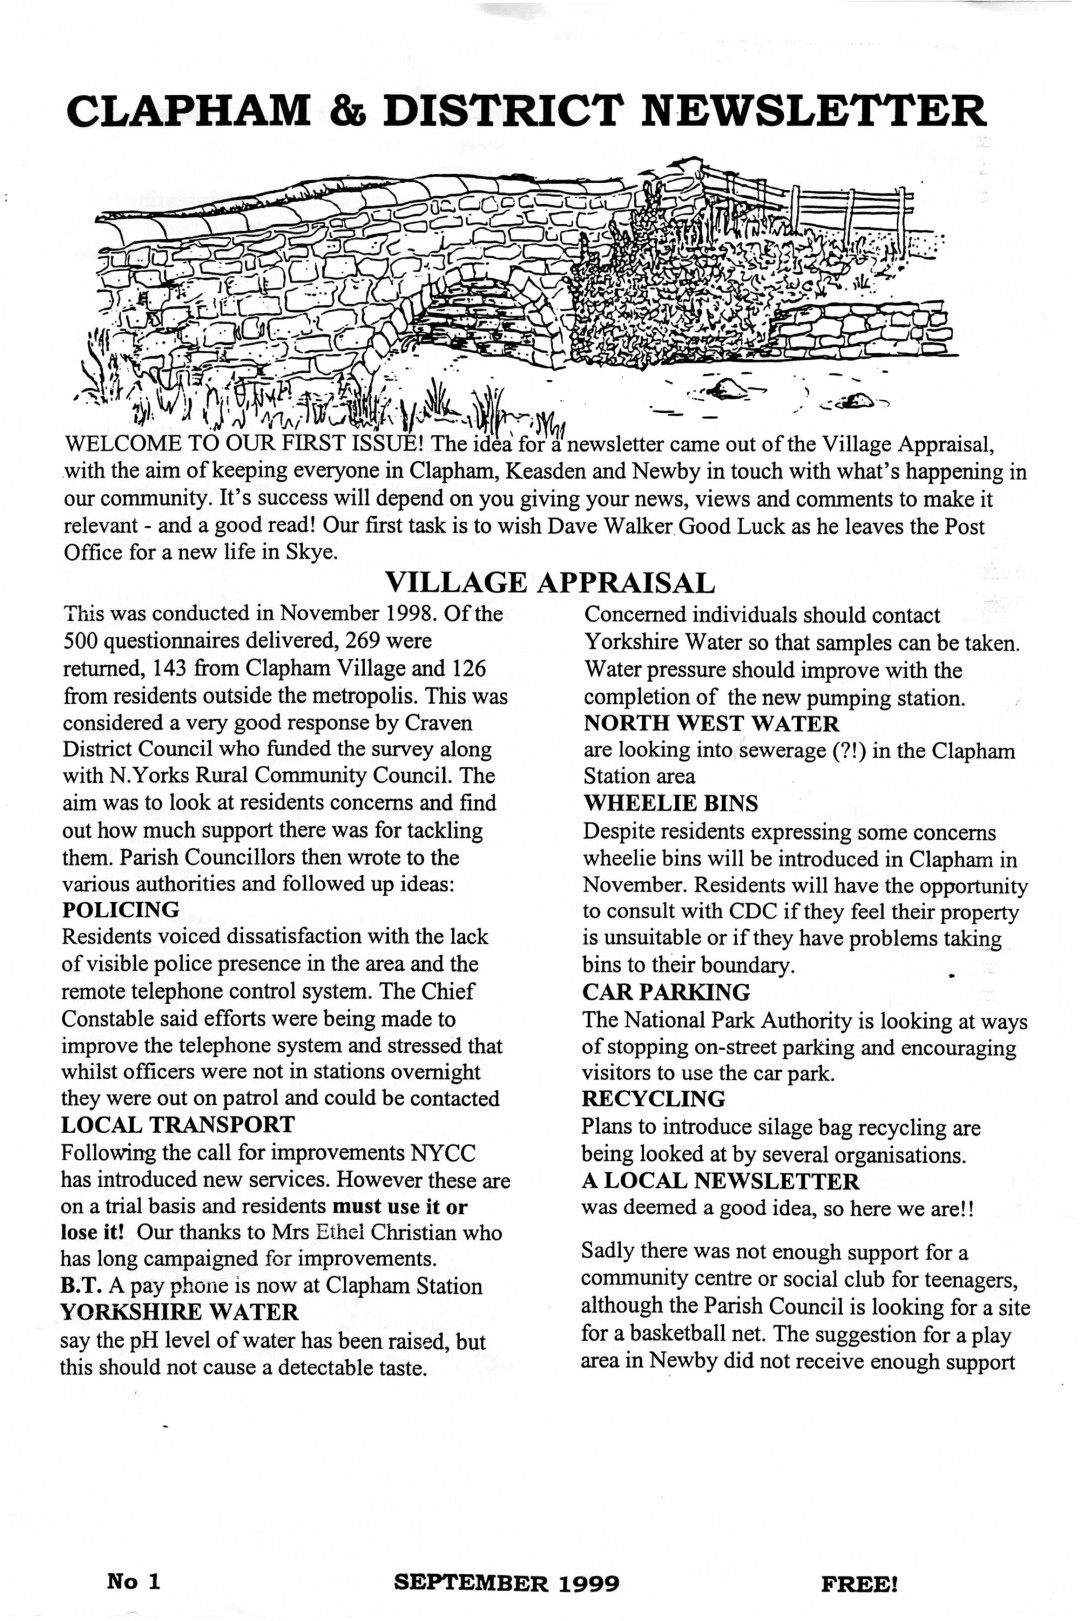 Clapham_Newsletter_No1_September_1999-1